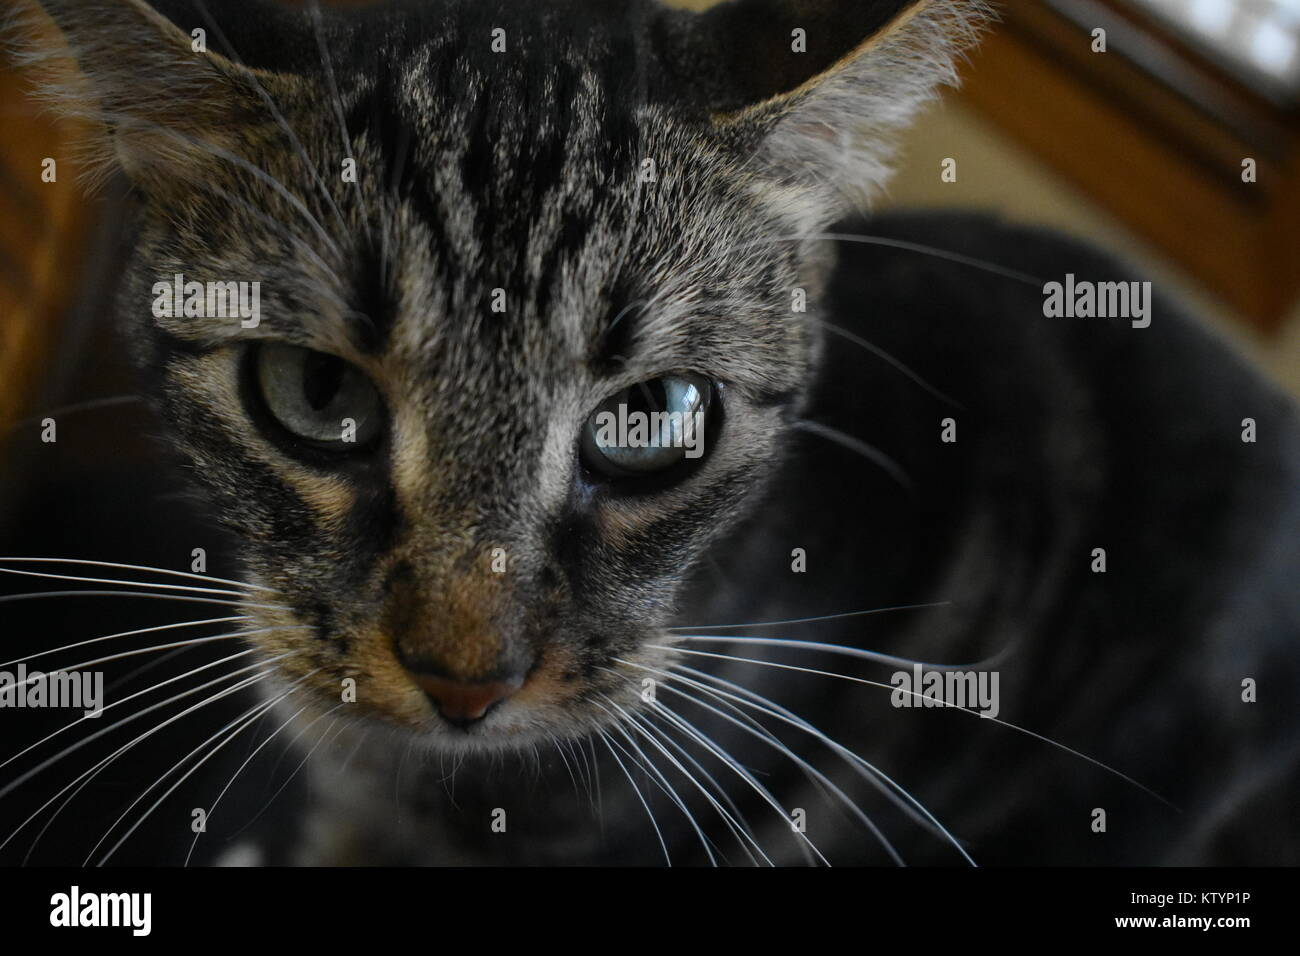 Tabby cat with long whiskers looking at the camera - Stock Image